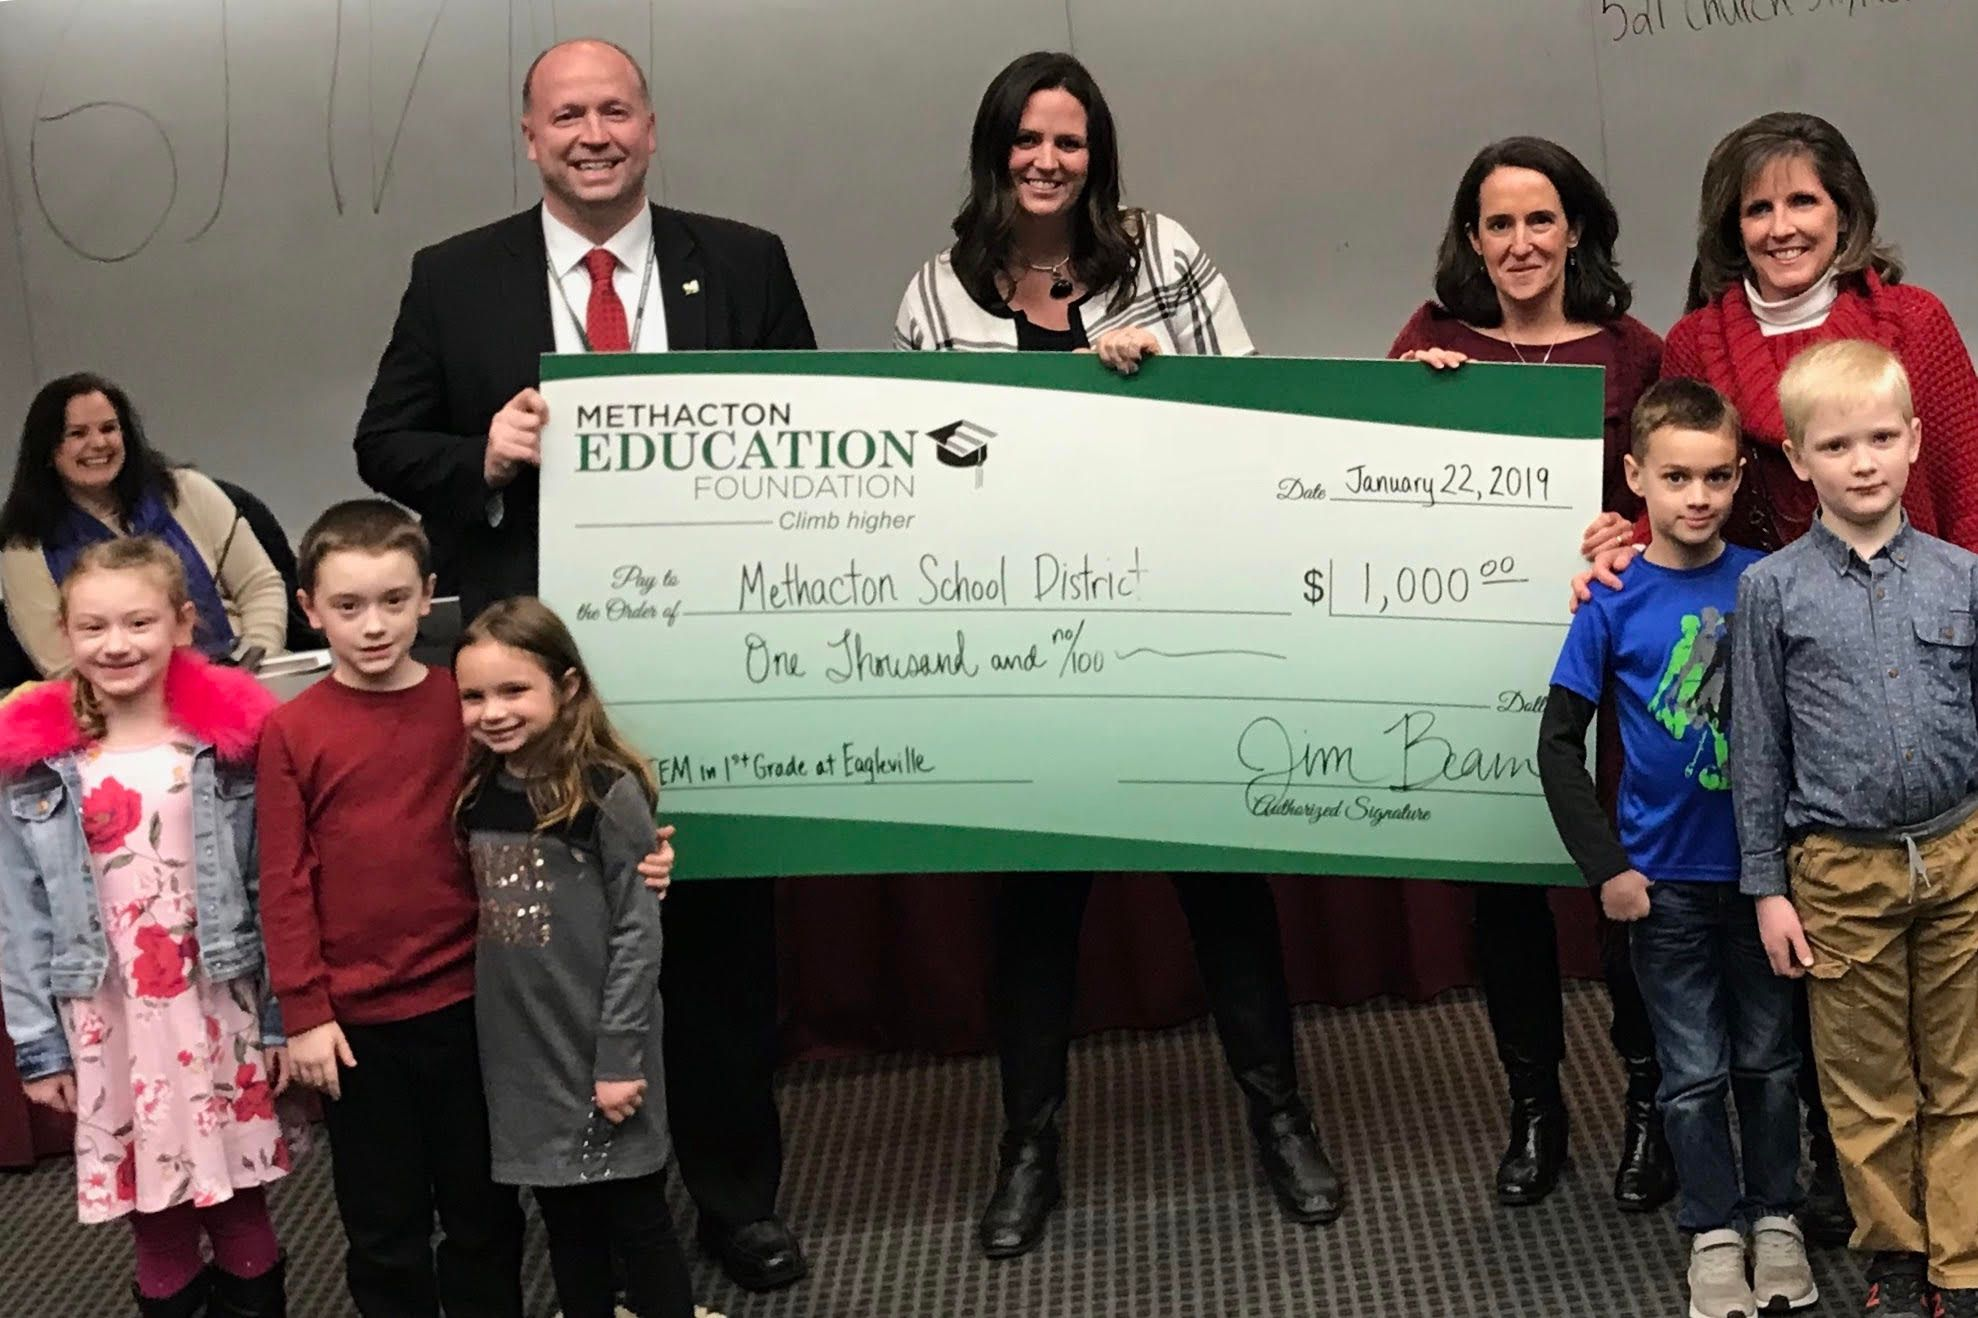 Foundation Awards $1,000 for STEM at Eagleville